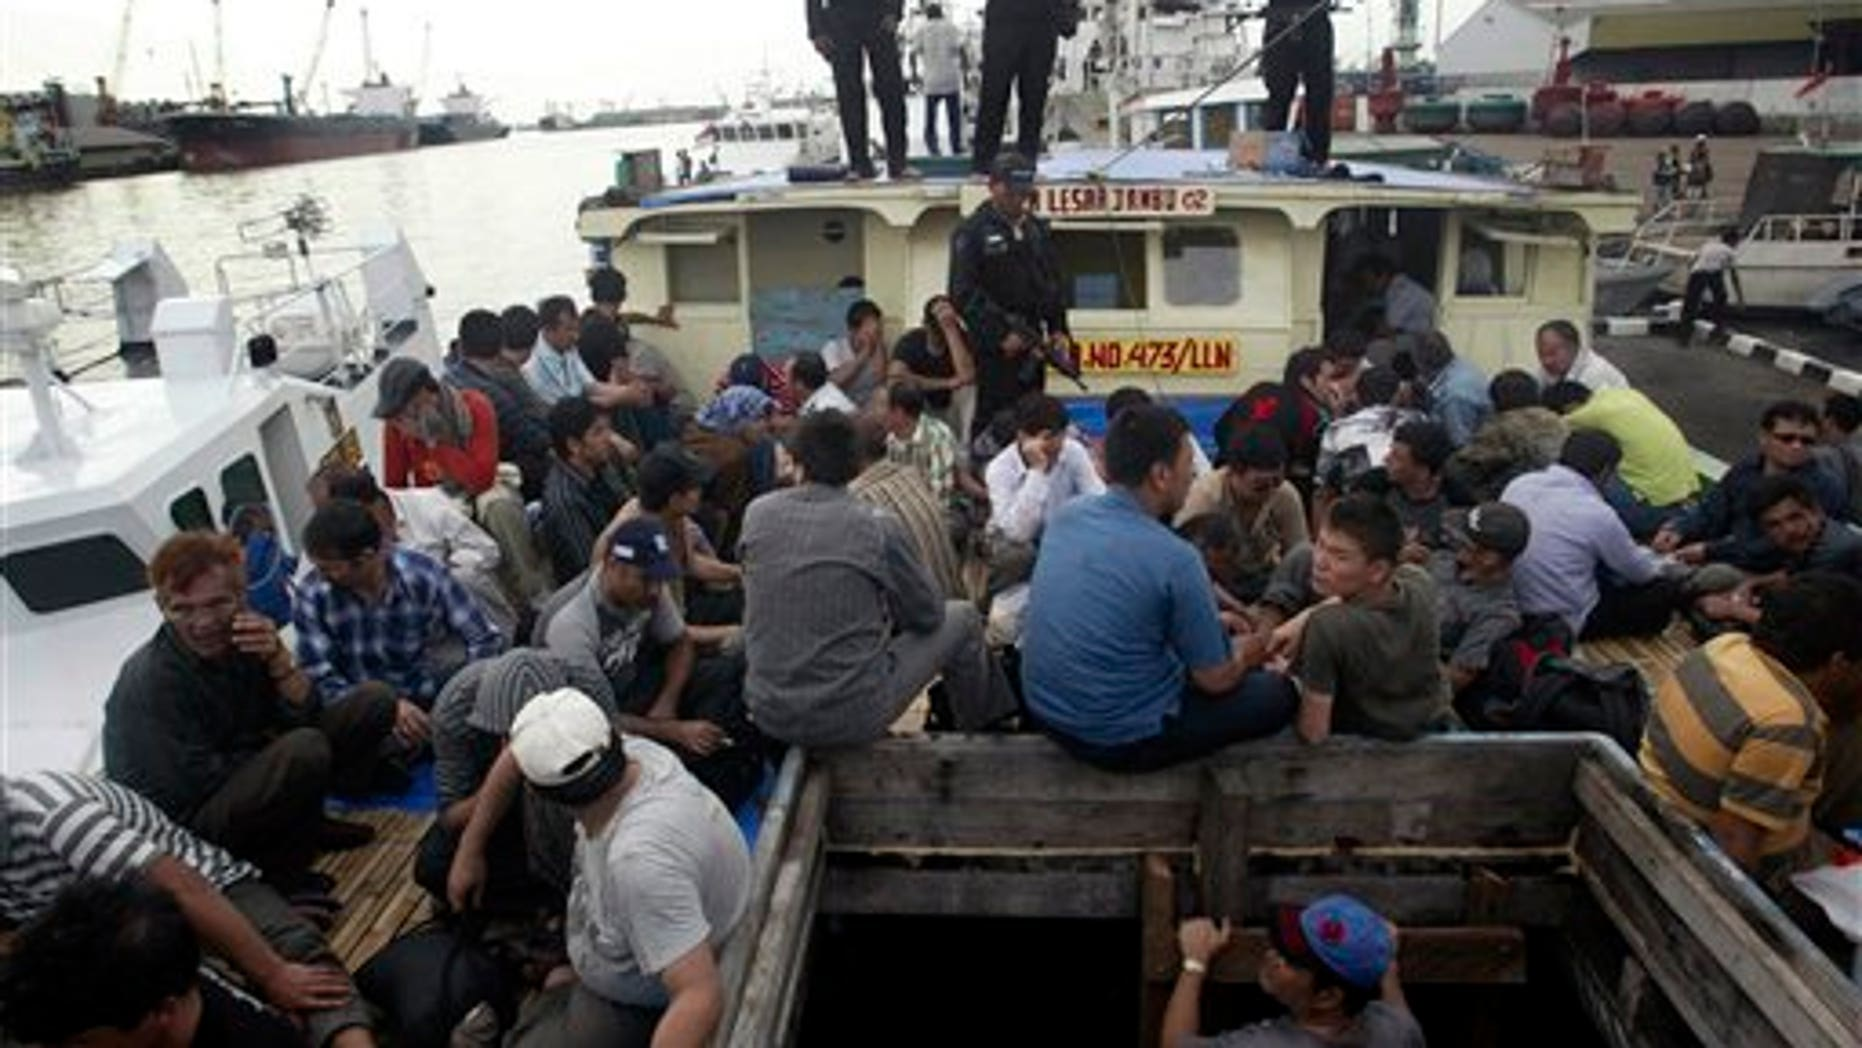 May 2, 2010: Indonesian marine police officers watch as Afghan asylum seekers sit on their ship that was caught off Java island upon docking at Tanjung Perak port in Surabaya, East Java, Indonesia.